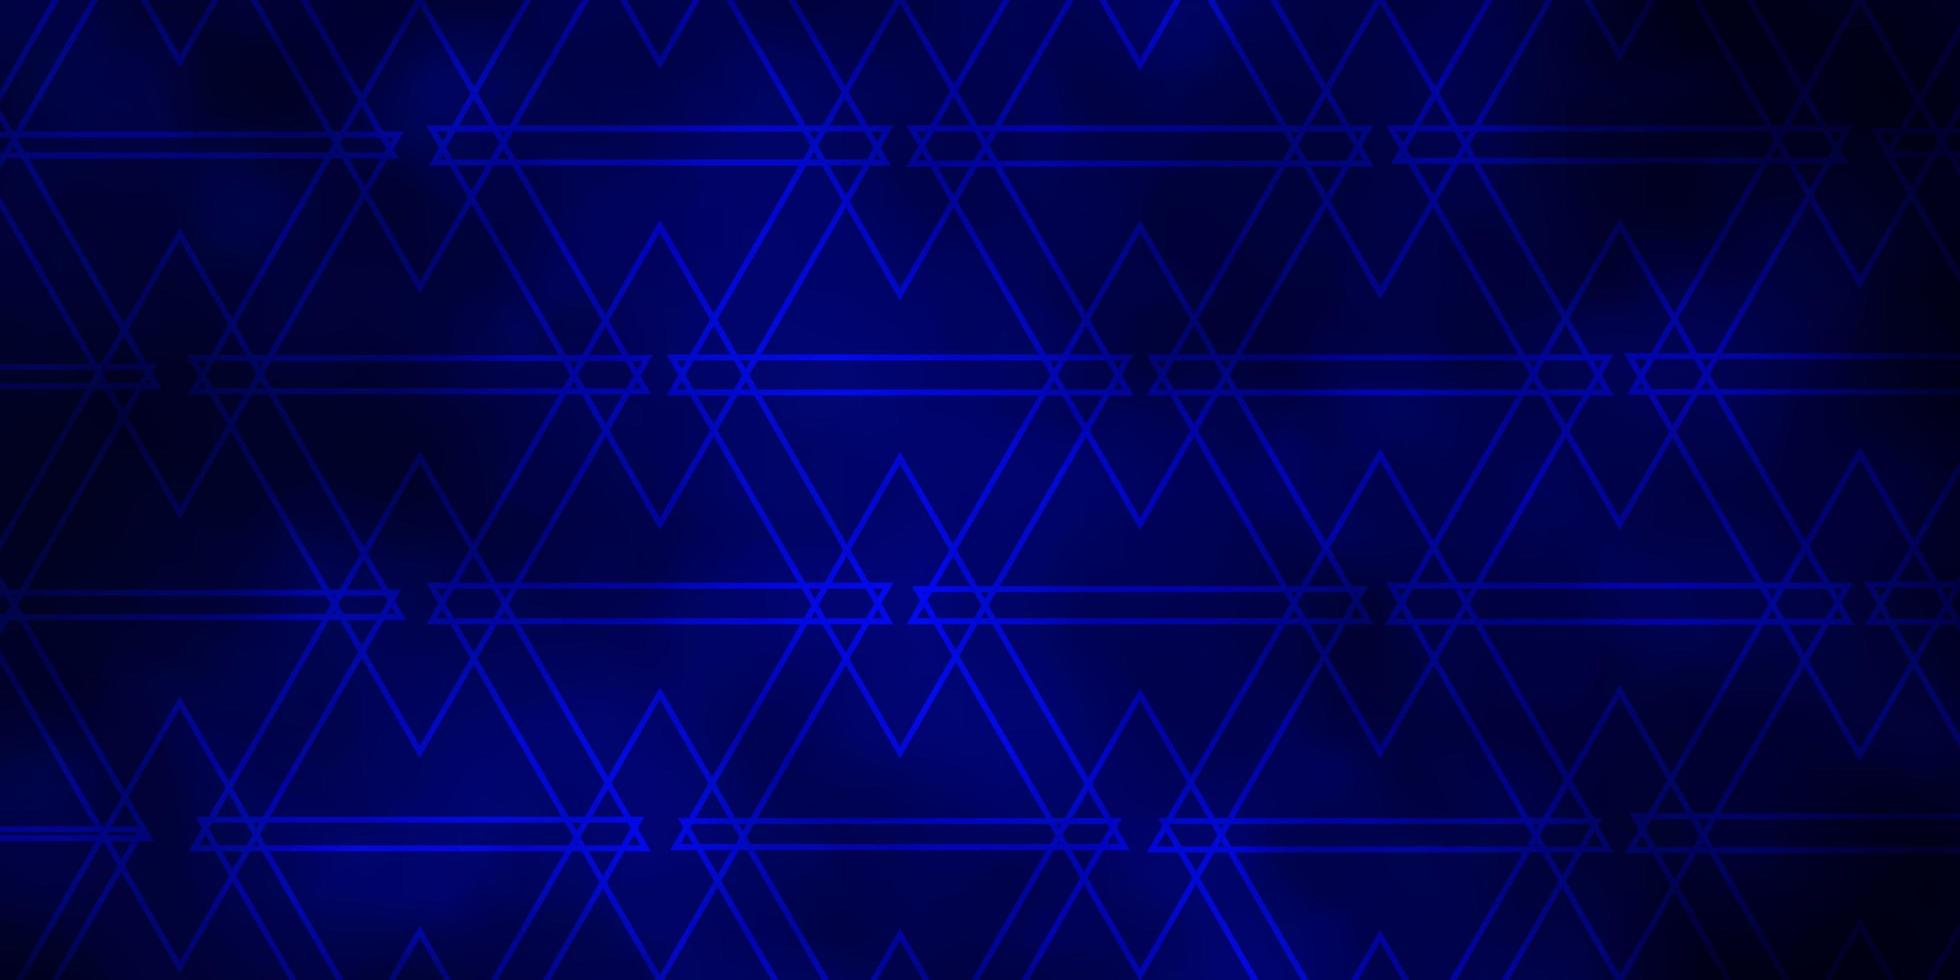 Dark blue background with lines, triangles. vector